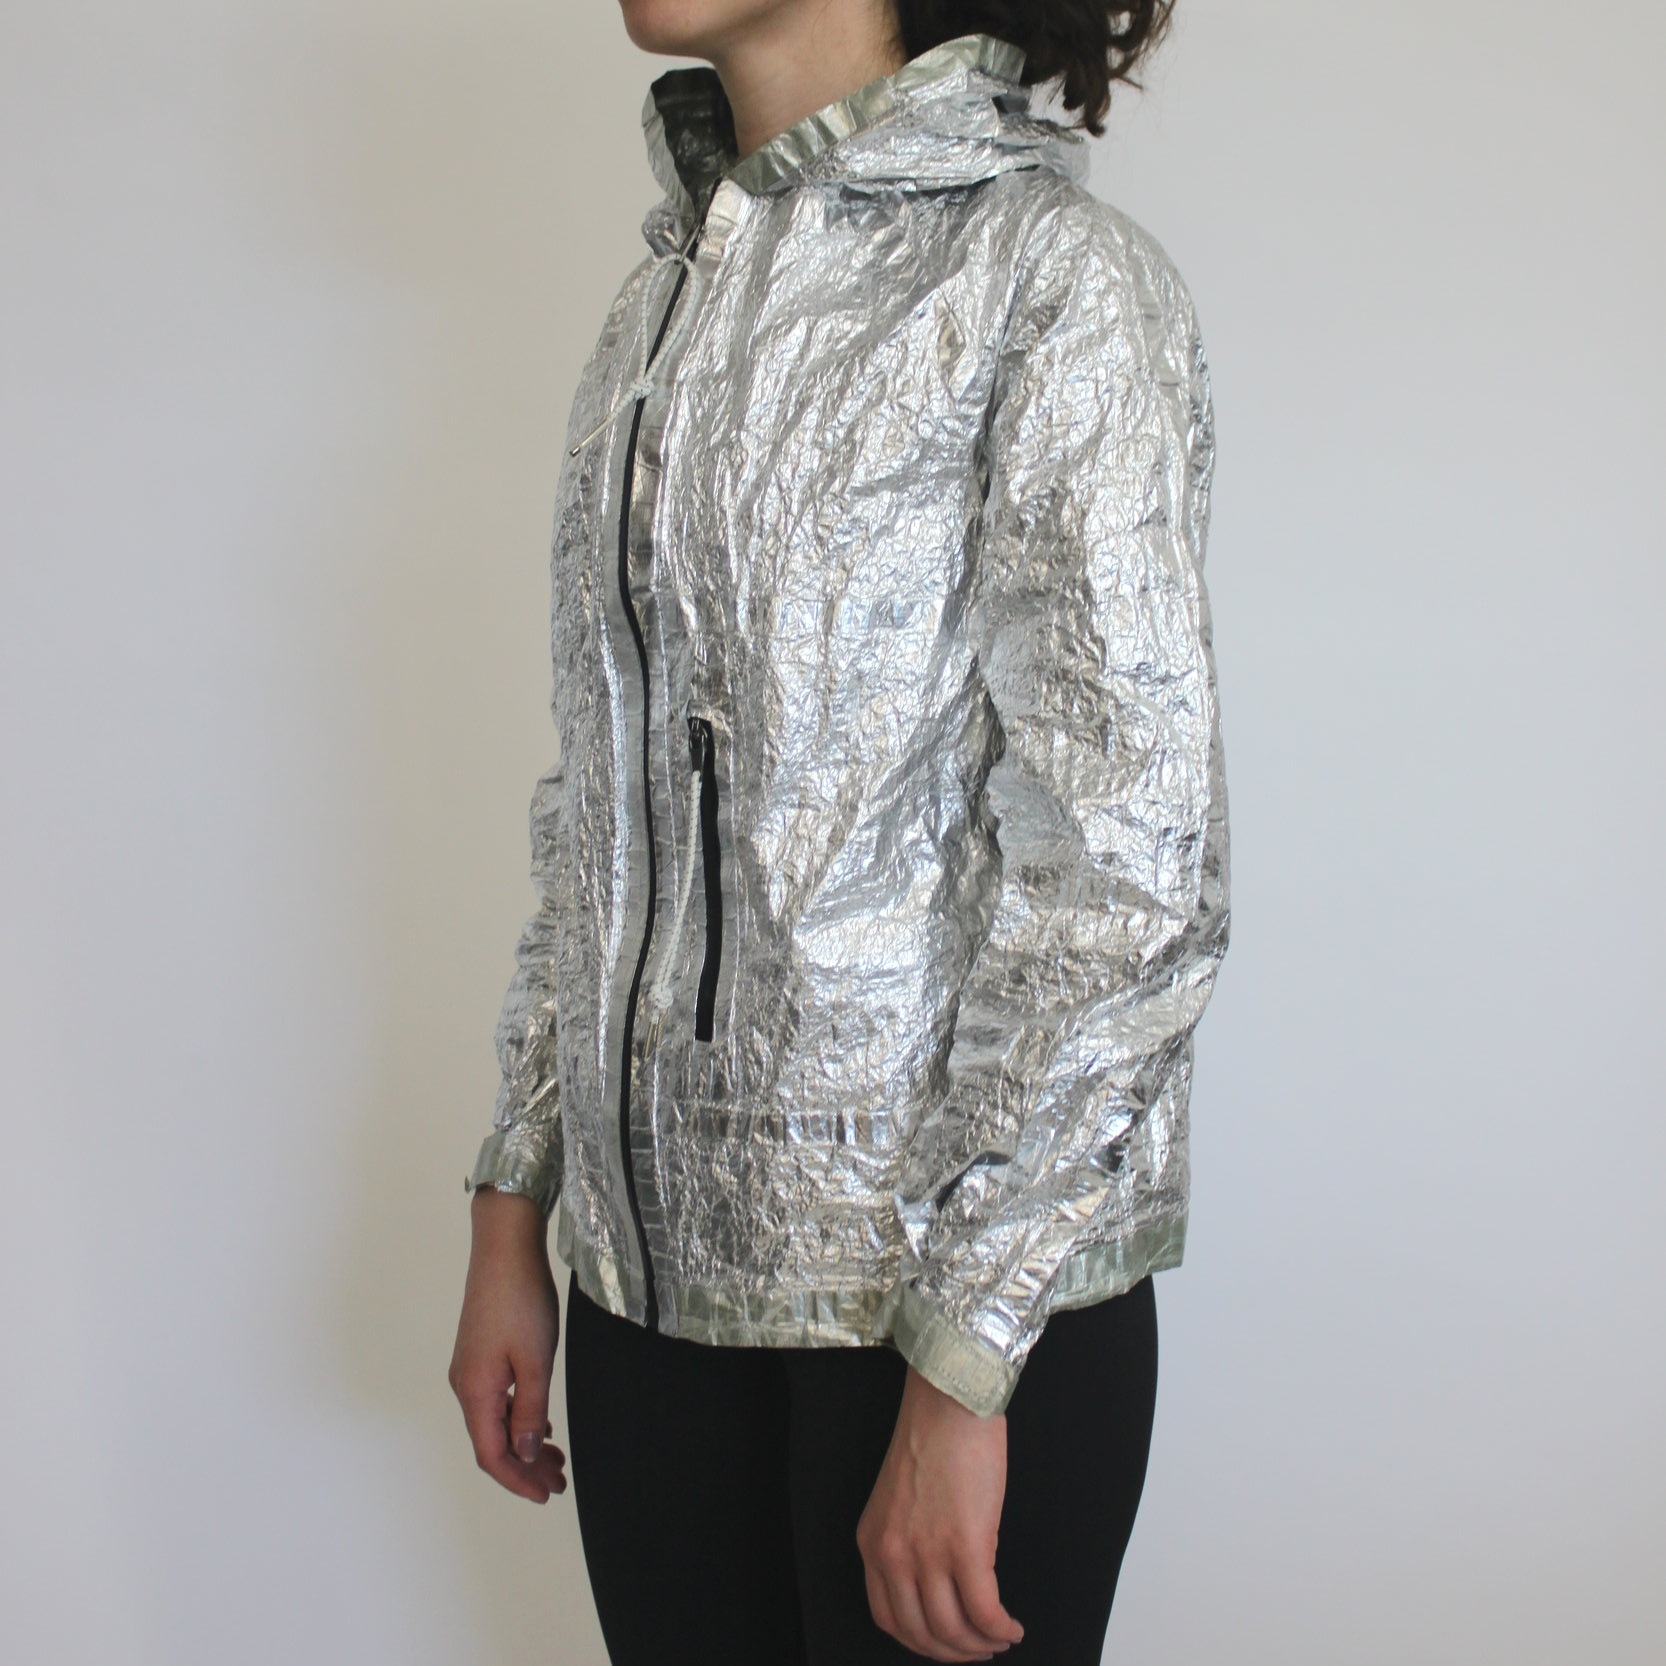 Emergency Jacket - Light weight and insulating Emergency Jacket is packable and around 6oz.